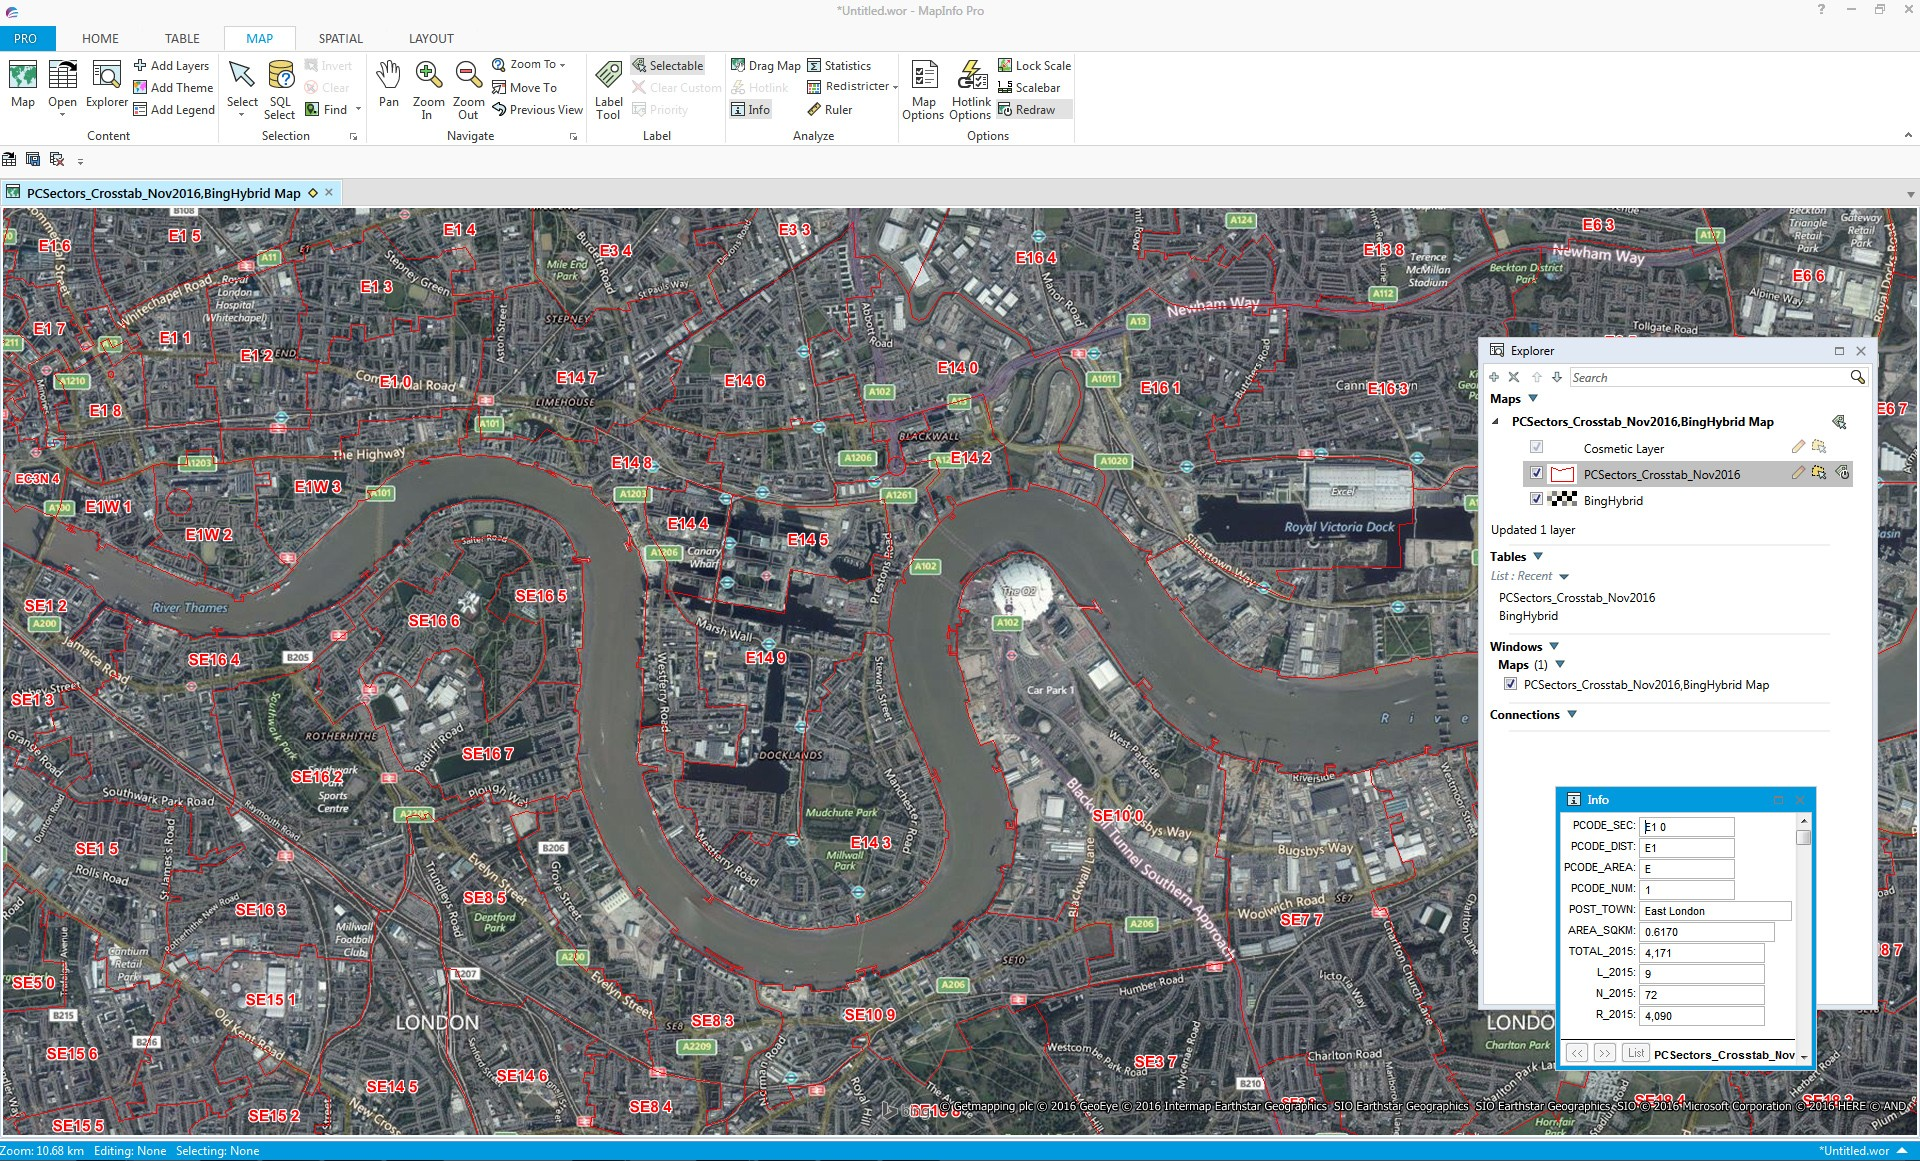 MapInfo Pro with Bing Image Map